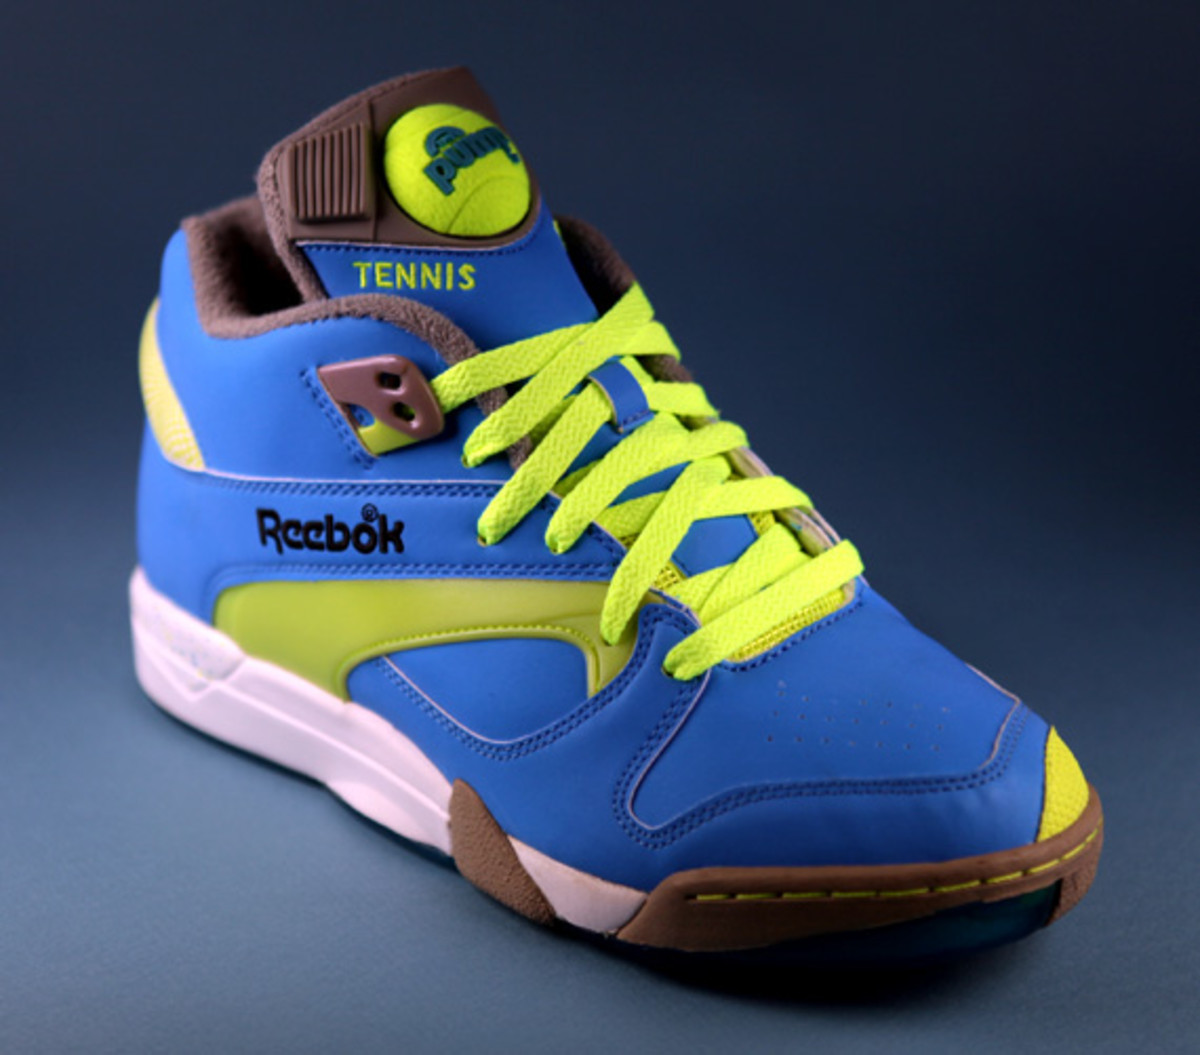 packer-shoes-reebok-court-victory-pump-us-open-01